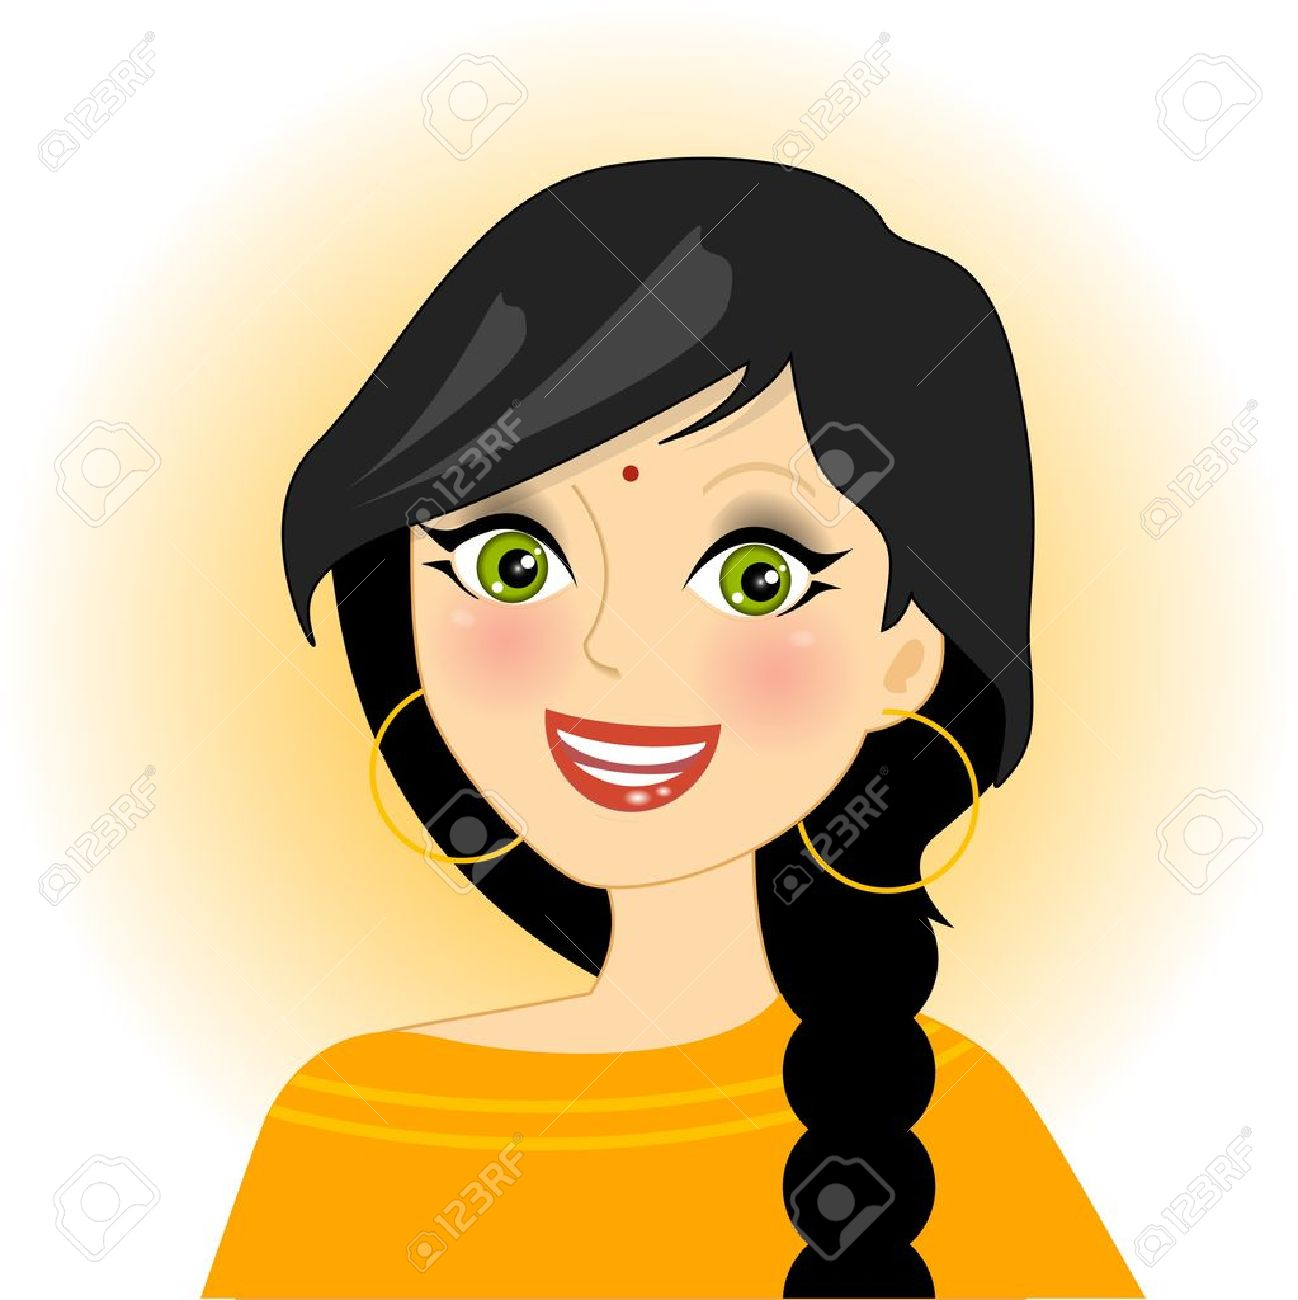 illustration of smiling indian girl royalty free cliparts vectors rh 123rf com indian girl clipart black and white Girl Scout Clip Art